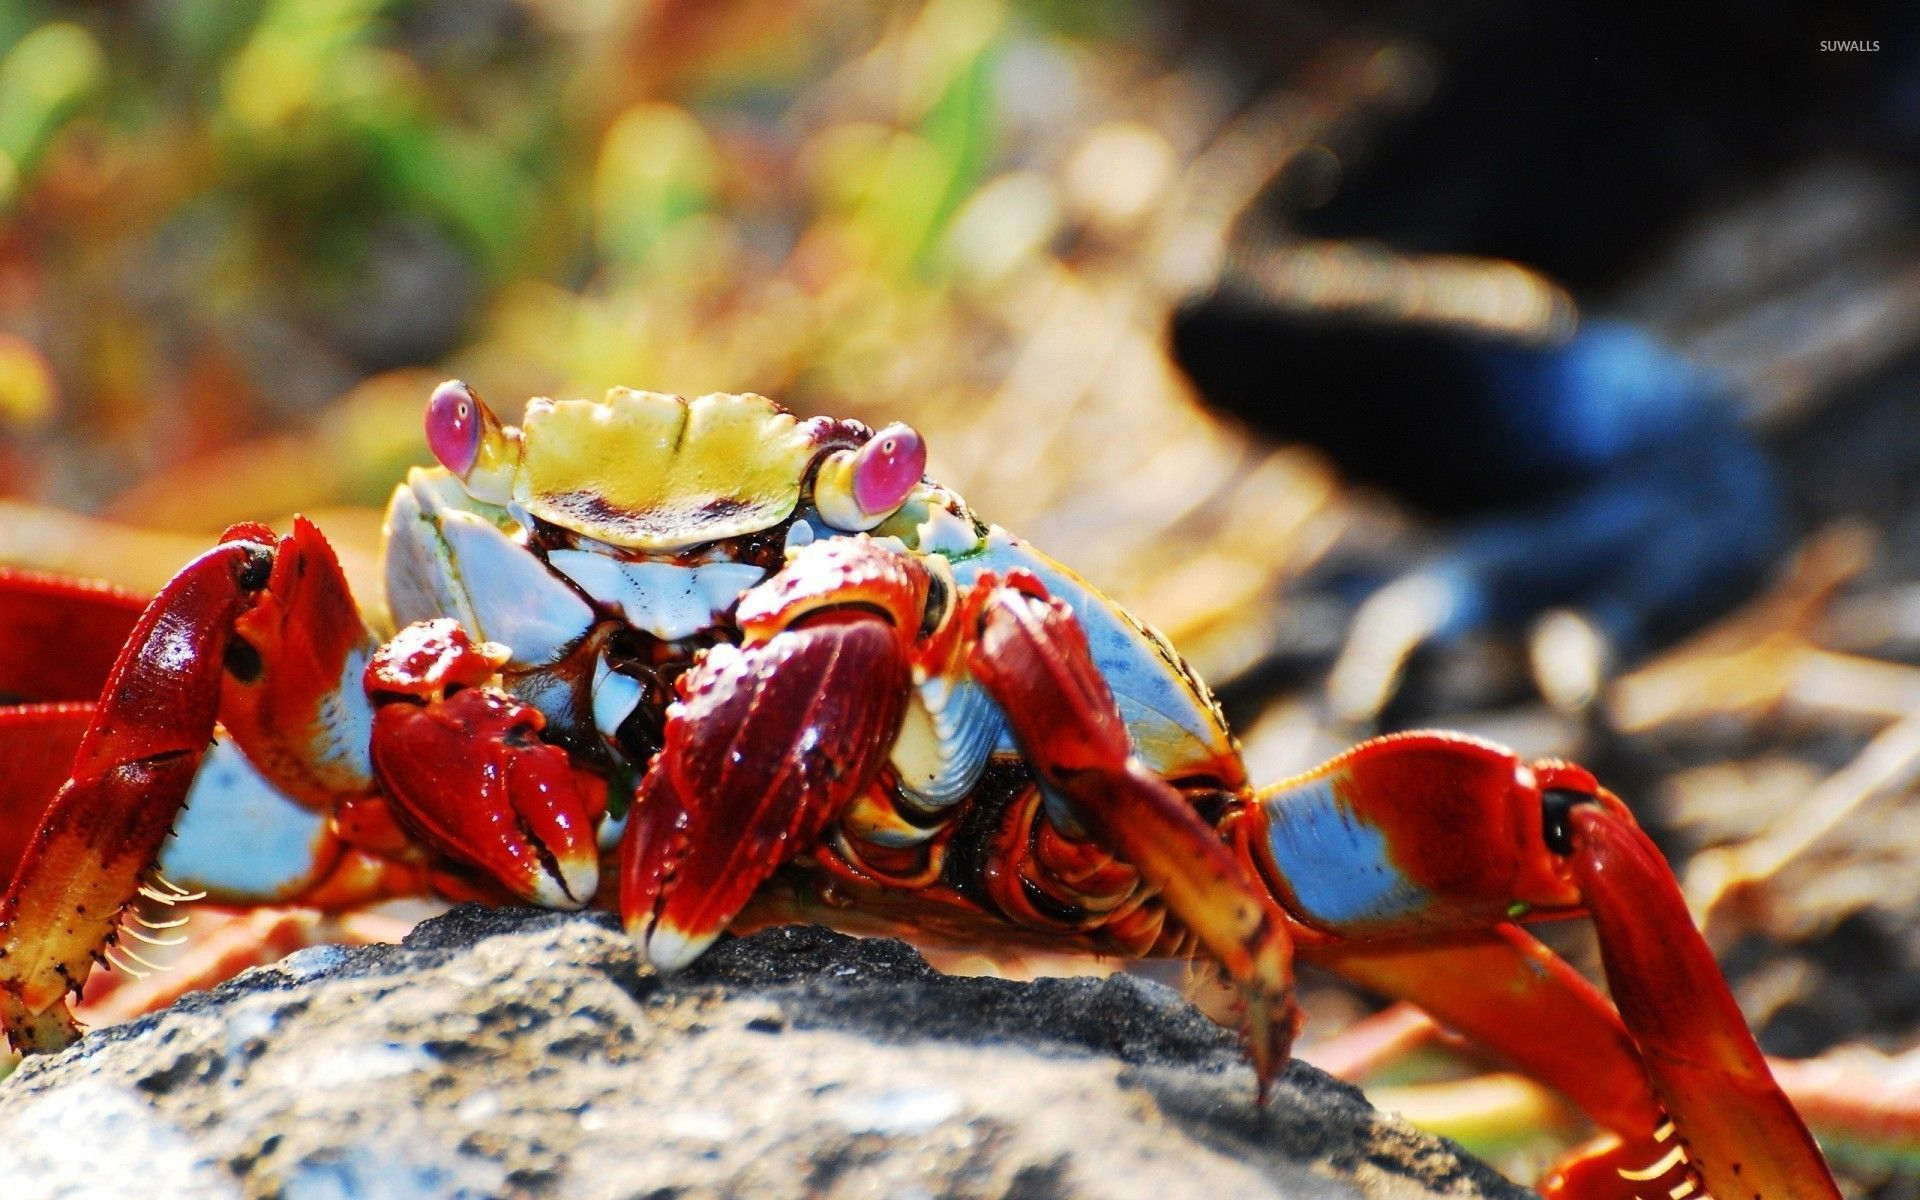 Awesome Crab Wallpapers FHDQ Images WPBG Collection